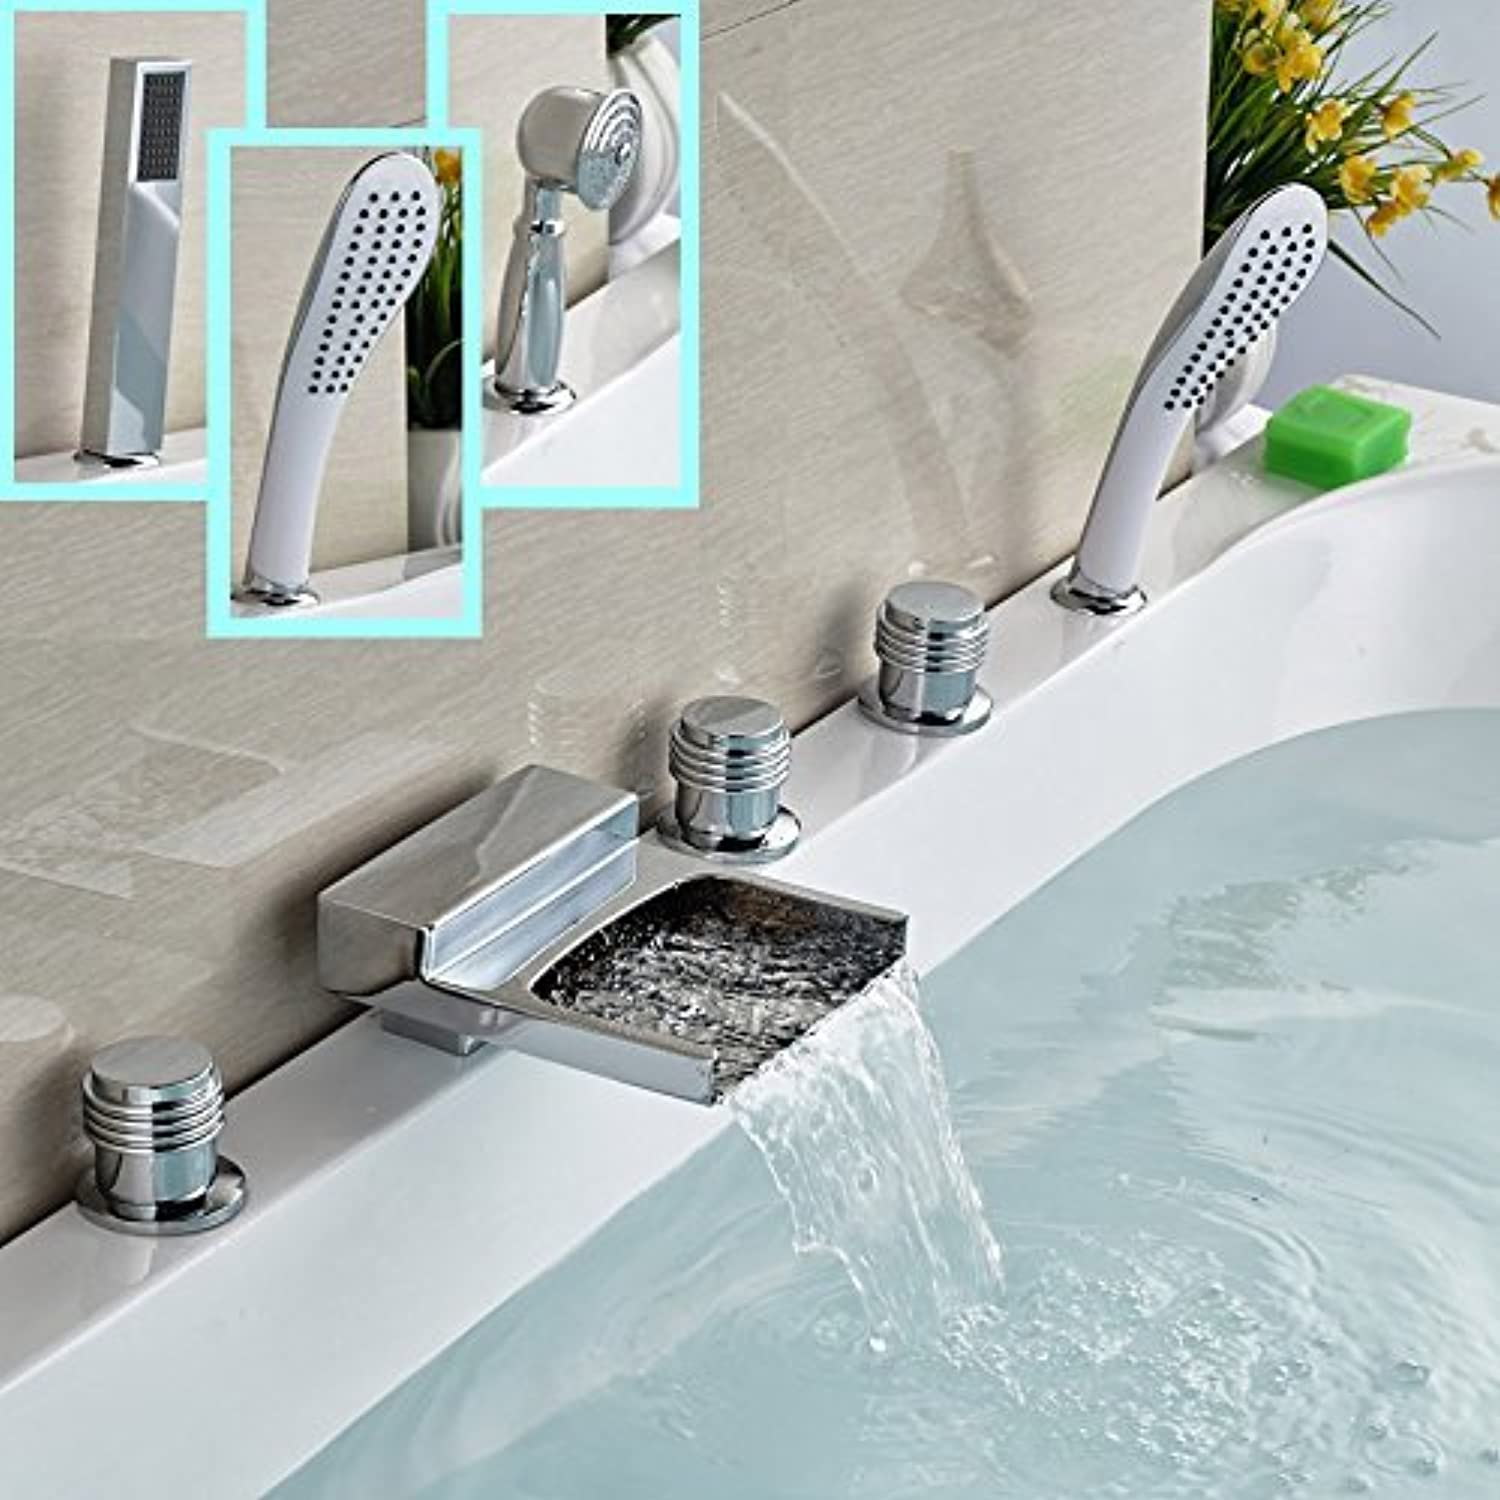 Deck Mount Glass Fitting 5 Units Wide Spread in Brass spout Waterfall Whirlpool Front seat Frames + Hand Shower 3-Styles